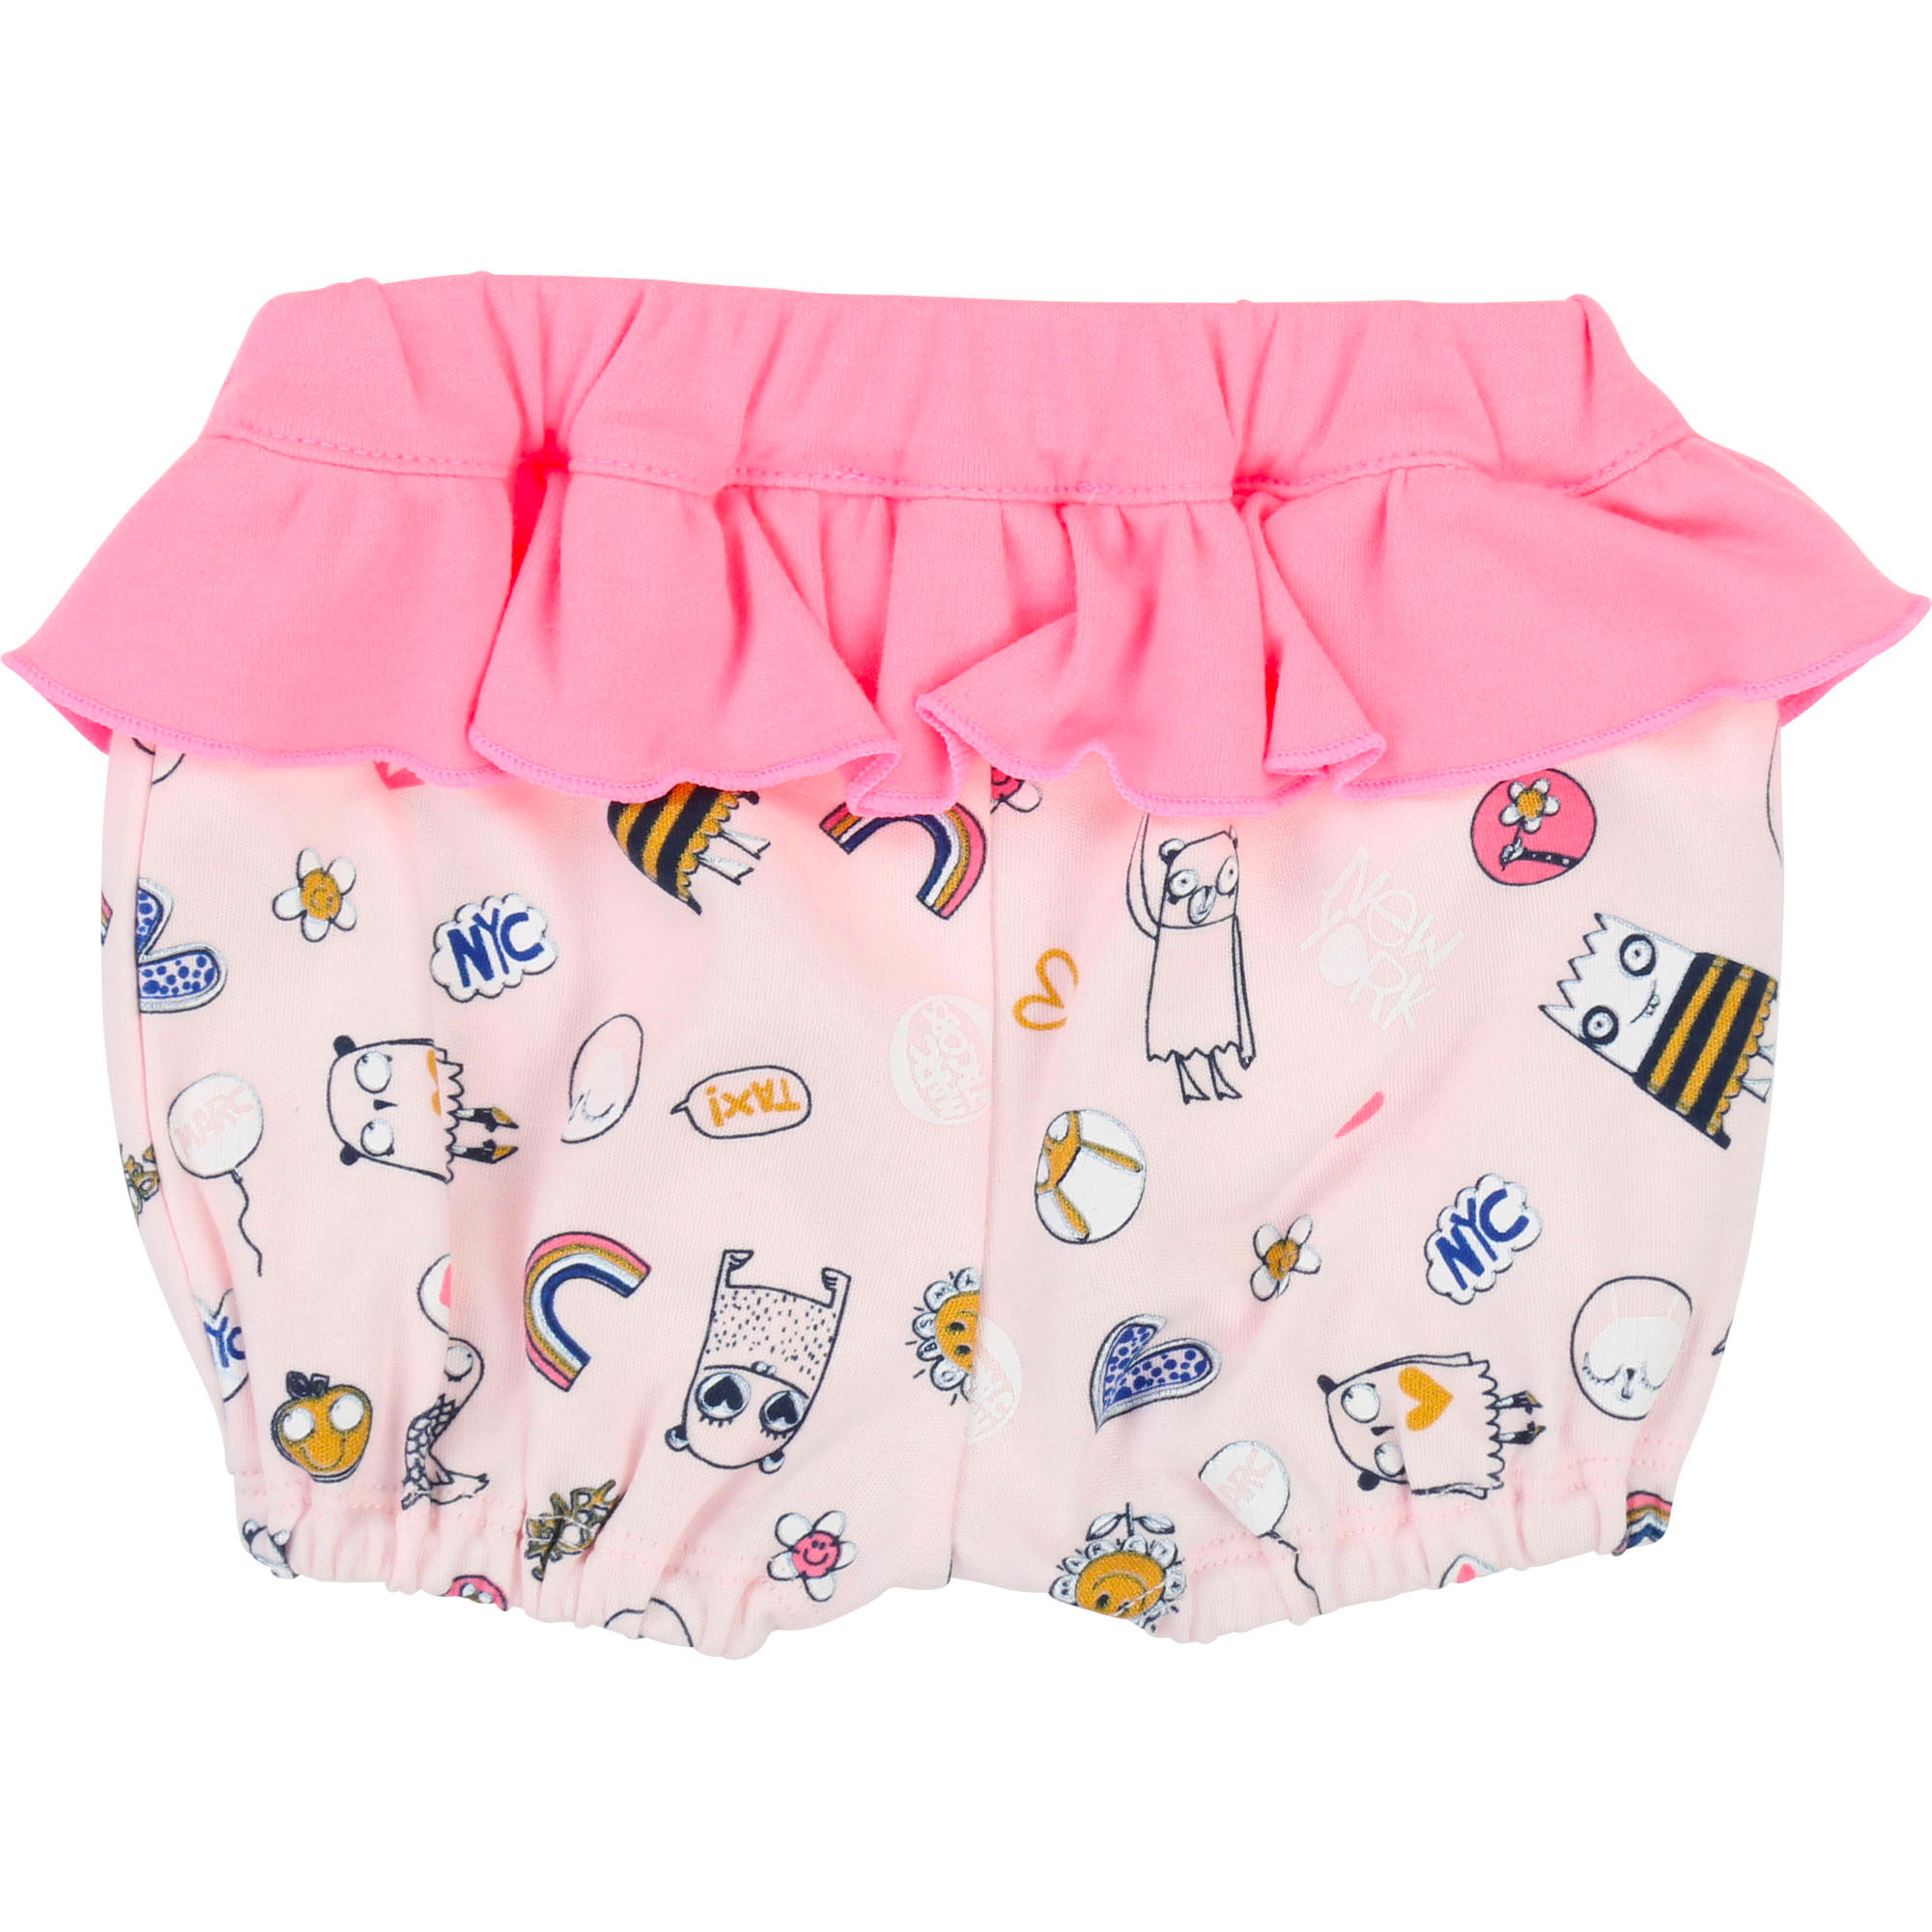 Interlock T-shirt and bloomers THE MARC JACOBS for UNISEX